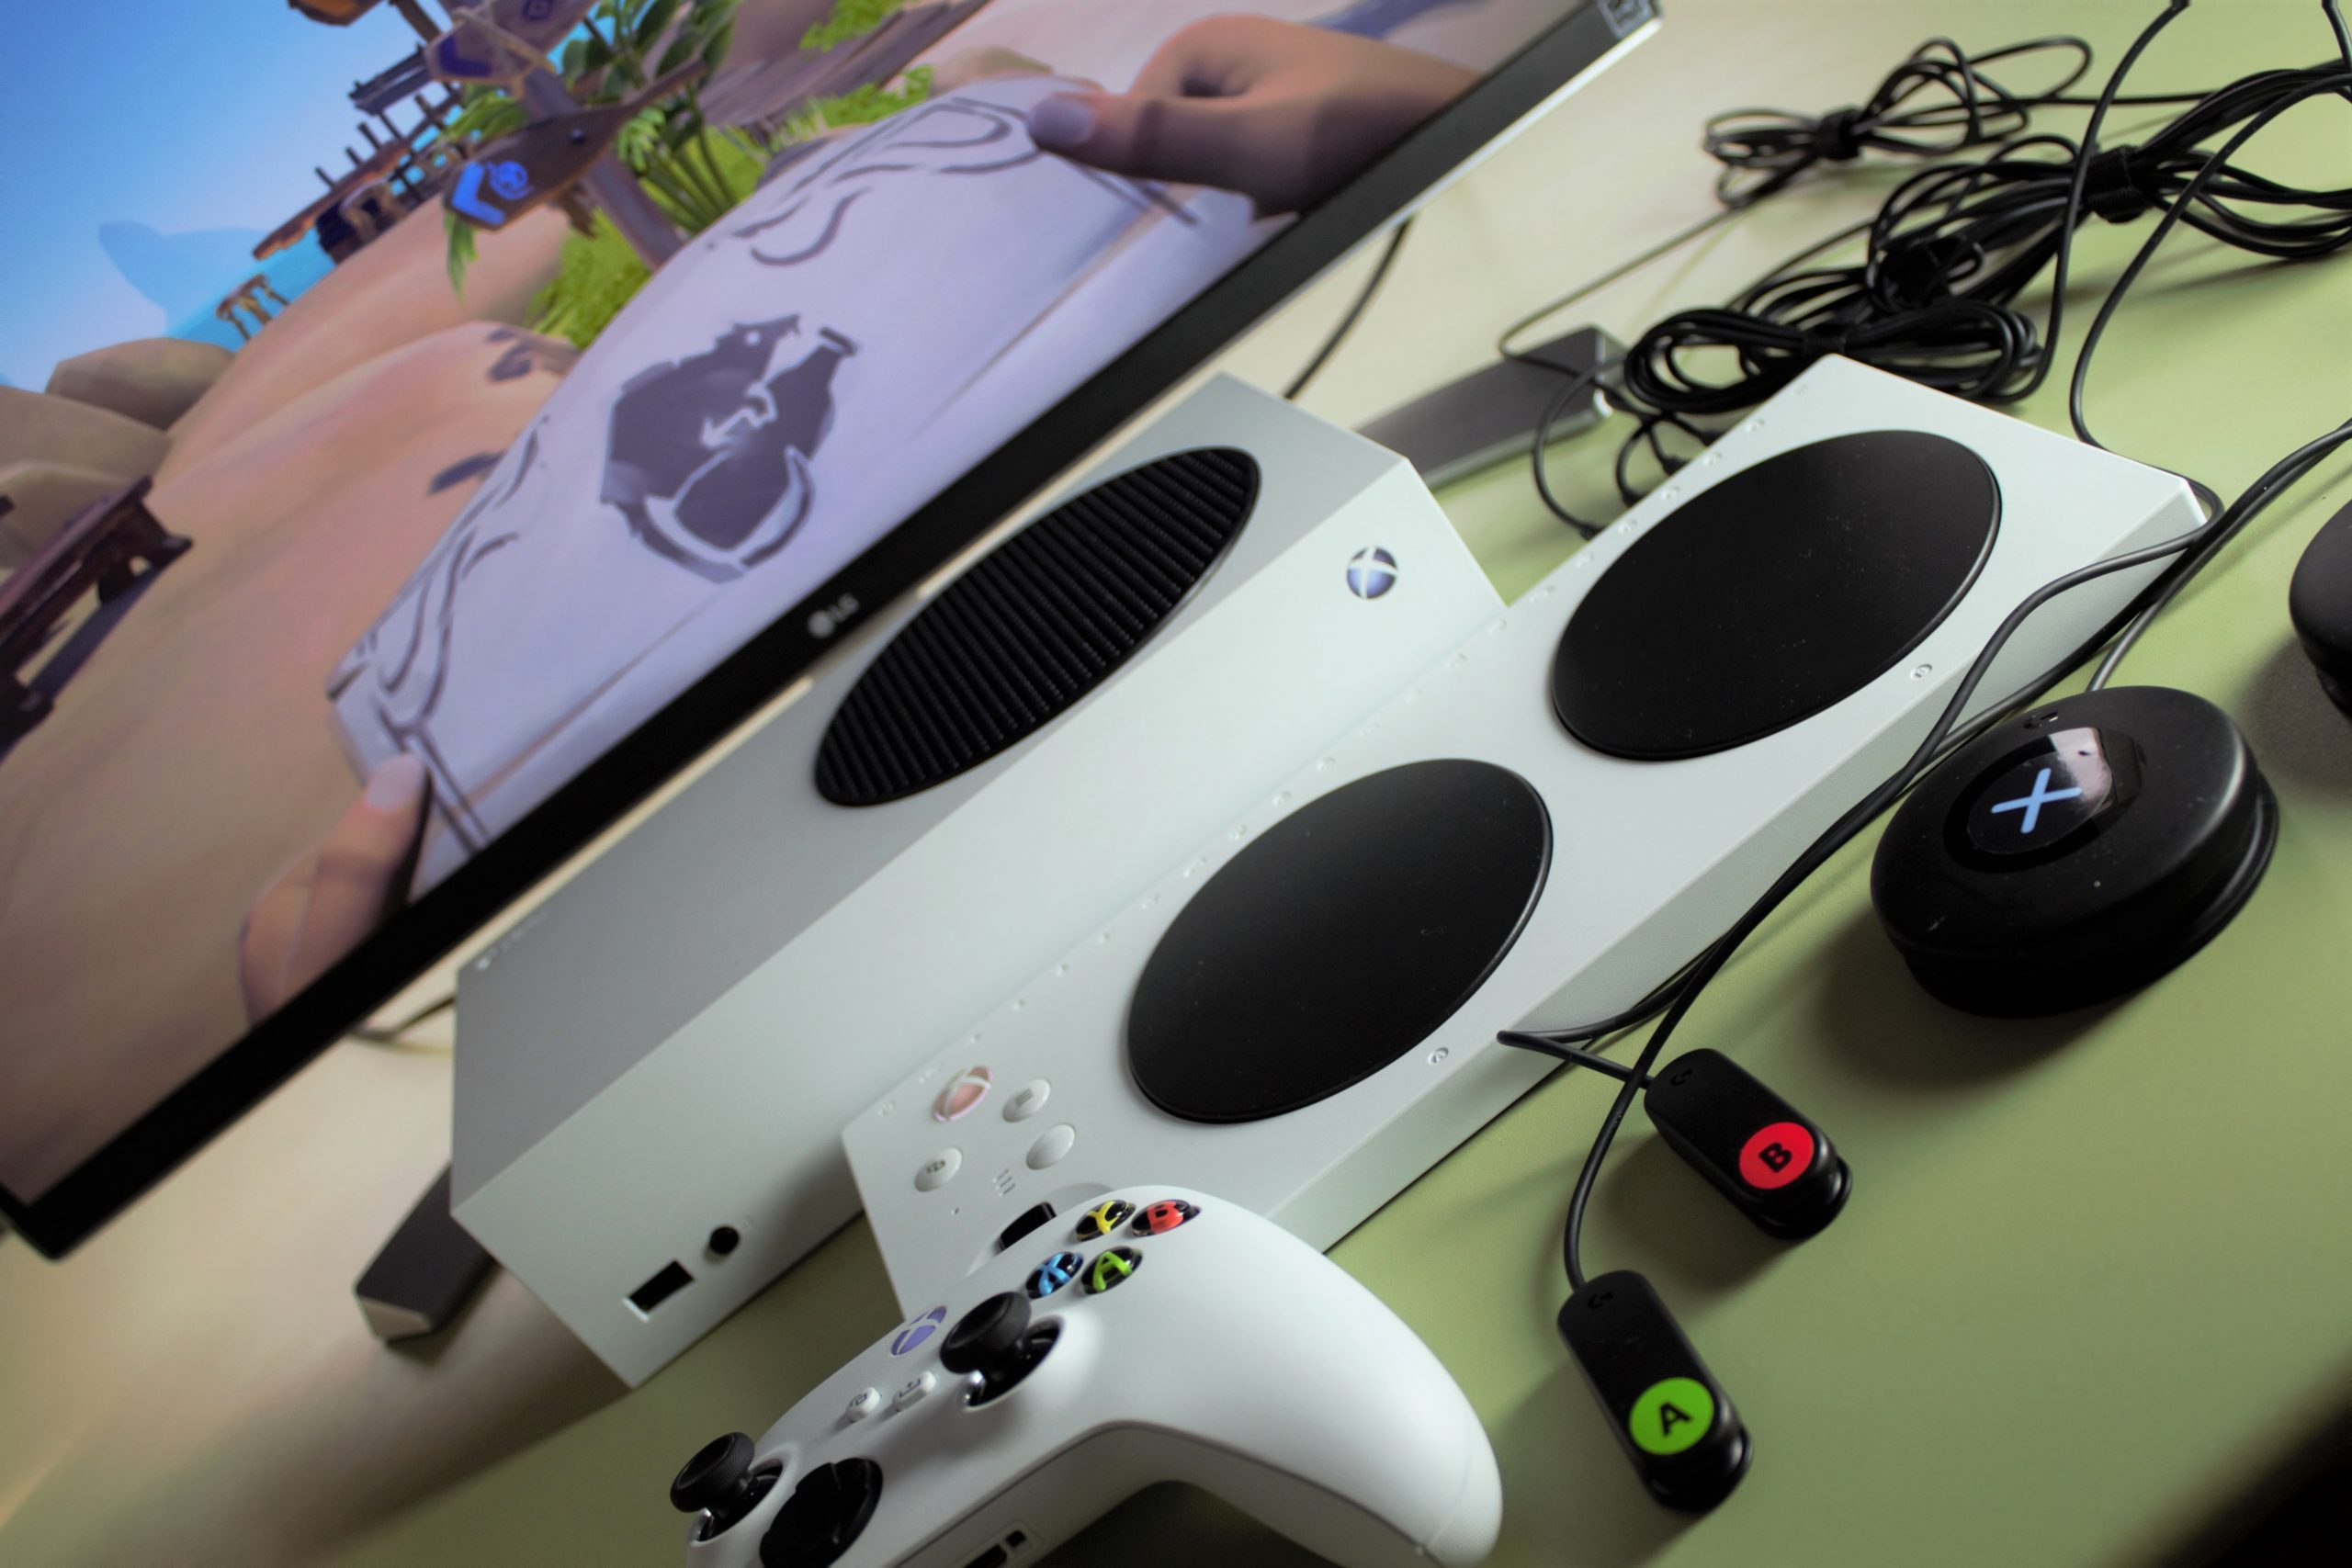 Photo showing a screen with Sea of Thieves, an Xbox Series S, an XAC, astandard controller and Logitech switches.